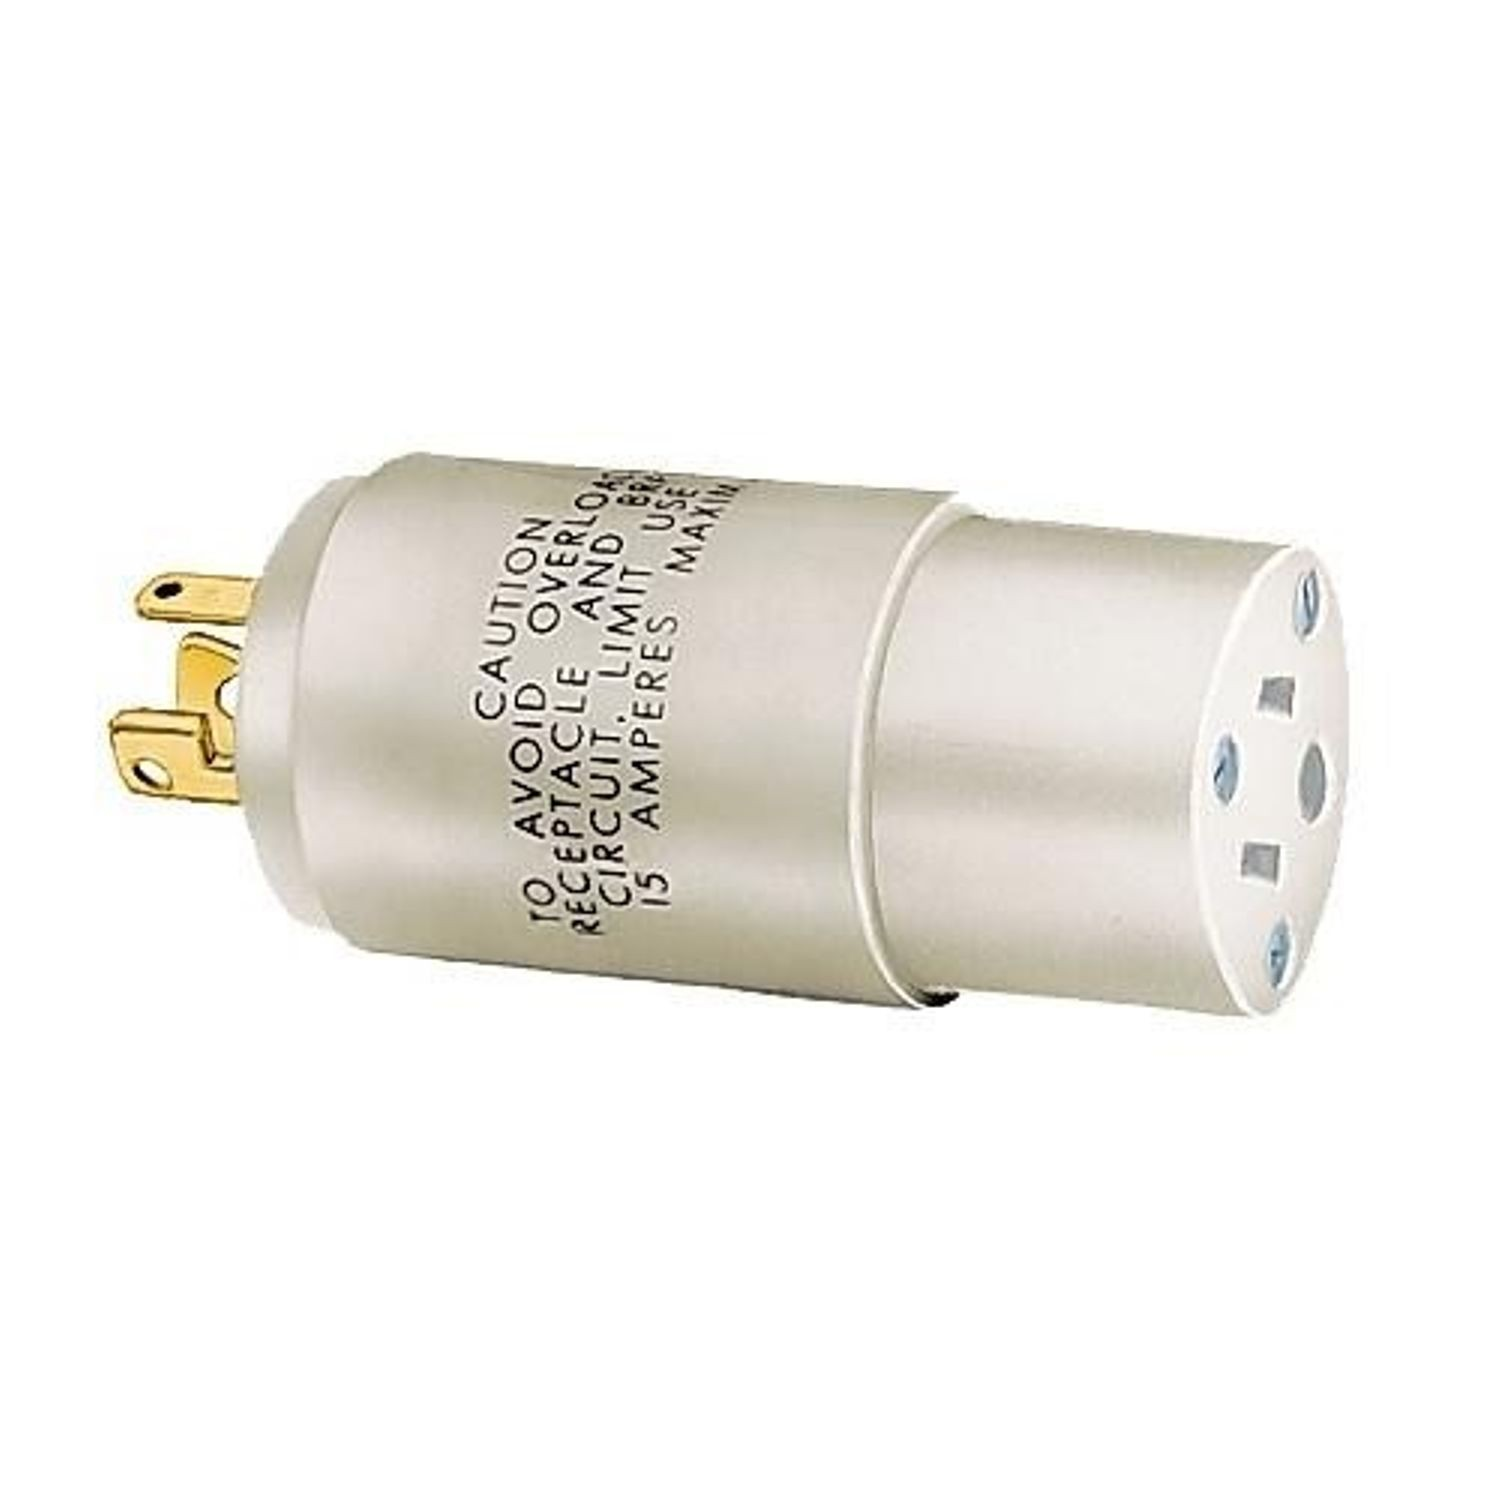 Wiring Device Kellems Twist Lock 9053a 1 Phase 2 Pole 3 Wire Fluorescent Lights To A Plug Grounding Standard In Adapter 125 Vac 1875 W 15 Straight Female Slot End